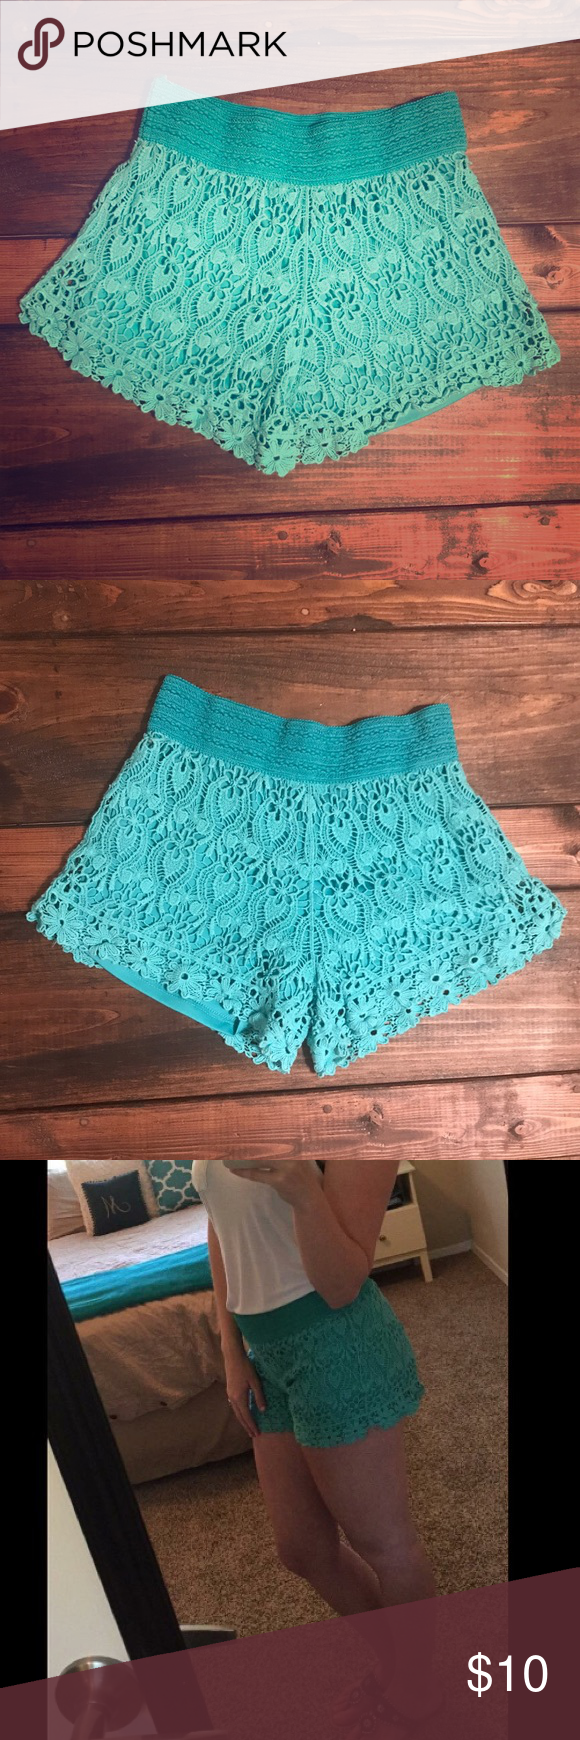 Lace Shorts Super cute teal lace shorts in great condition! Only worn a couple of times!! Shorts